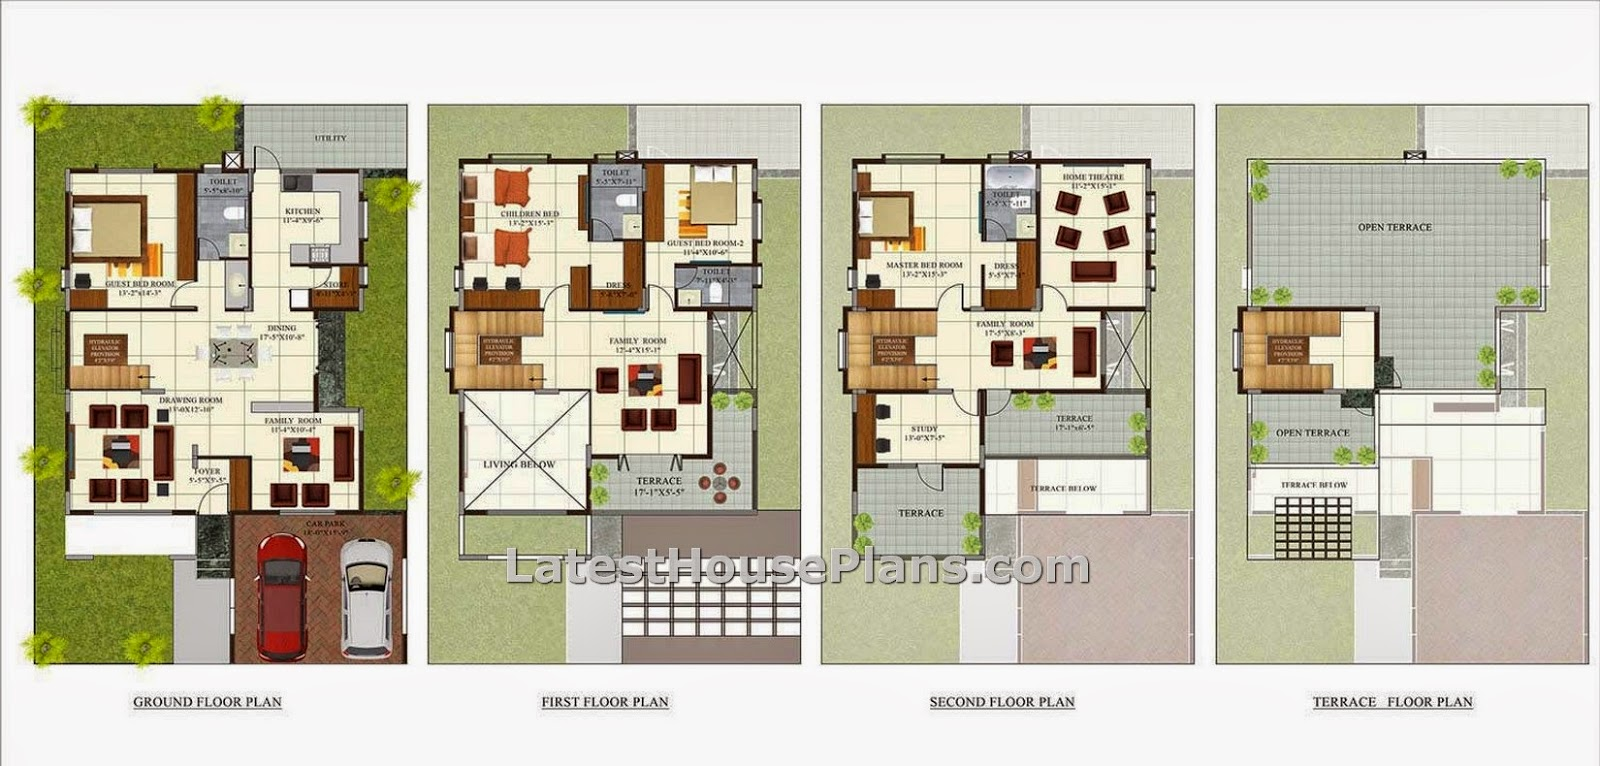 Double bedroom independent house plans in india for 720 sq ft house design in india